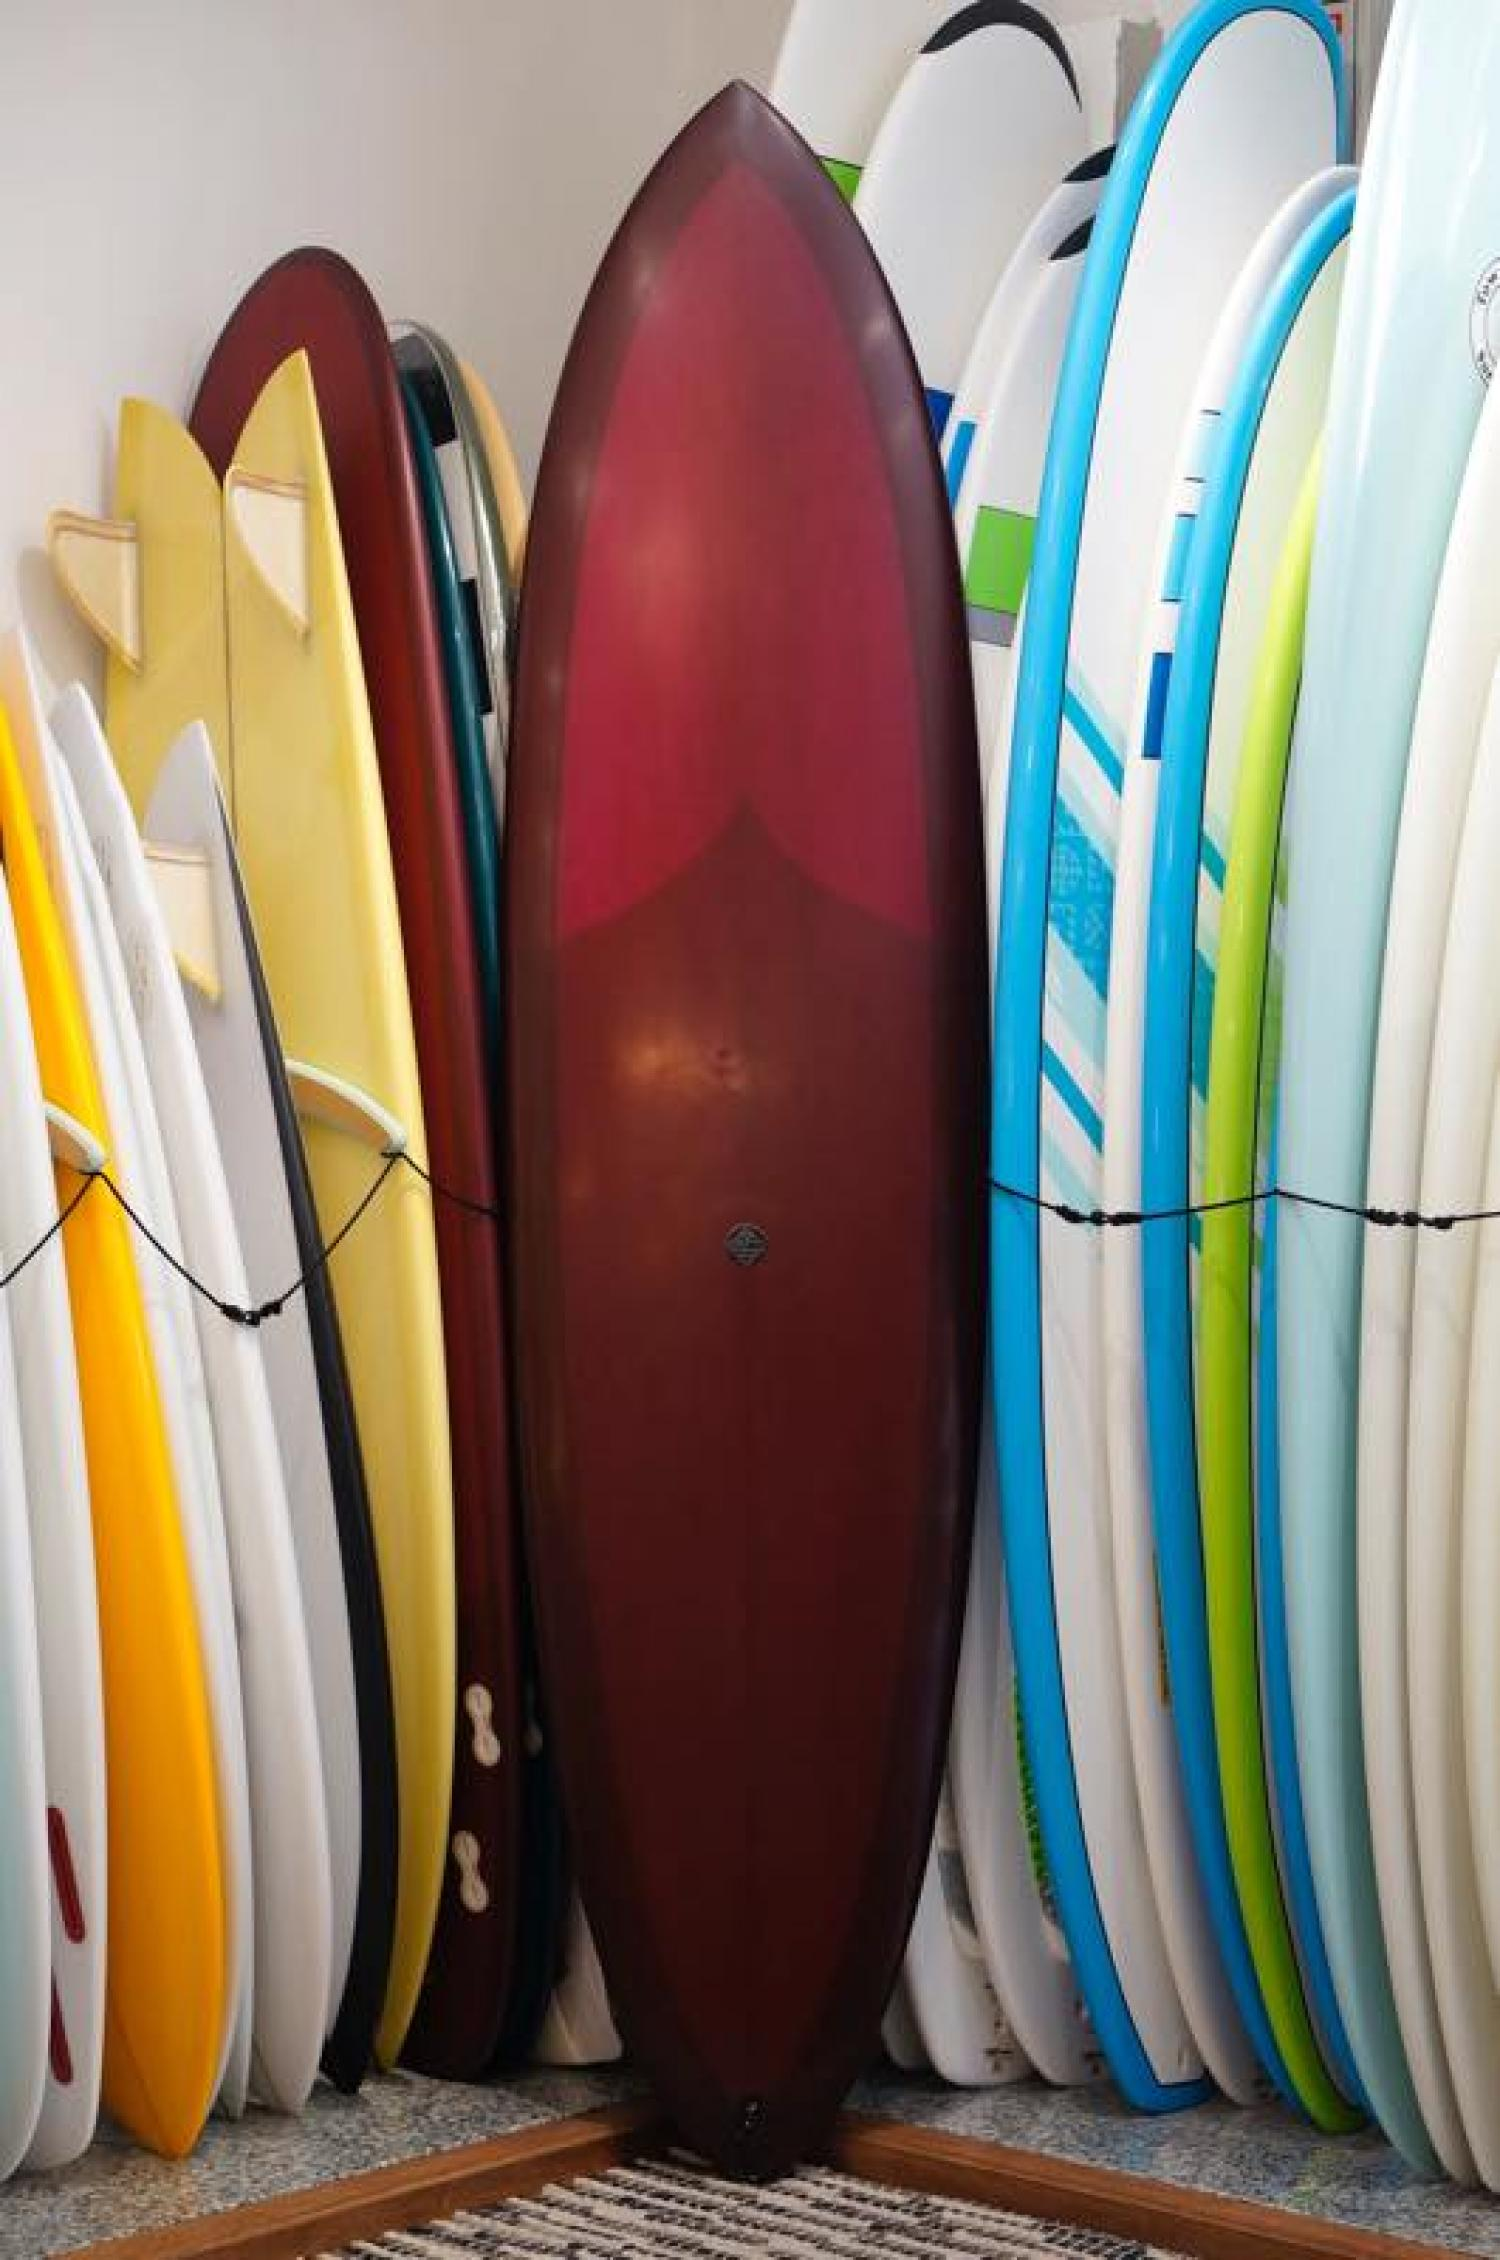 USED BARDS (EC SURFBOARDS Mini Pelican 8.0)